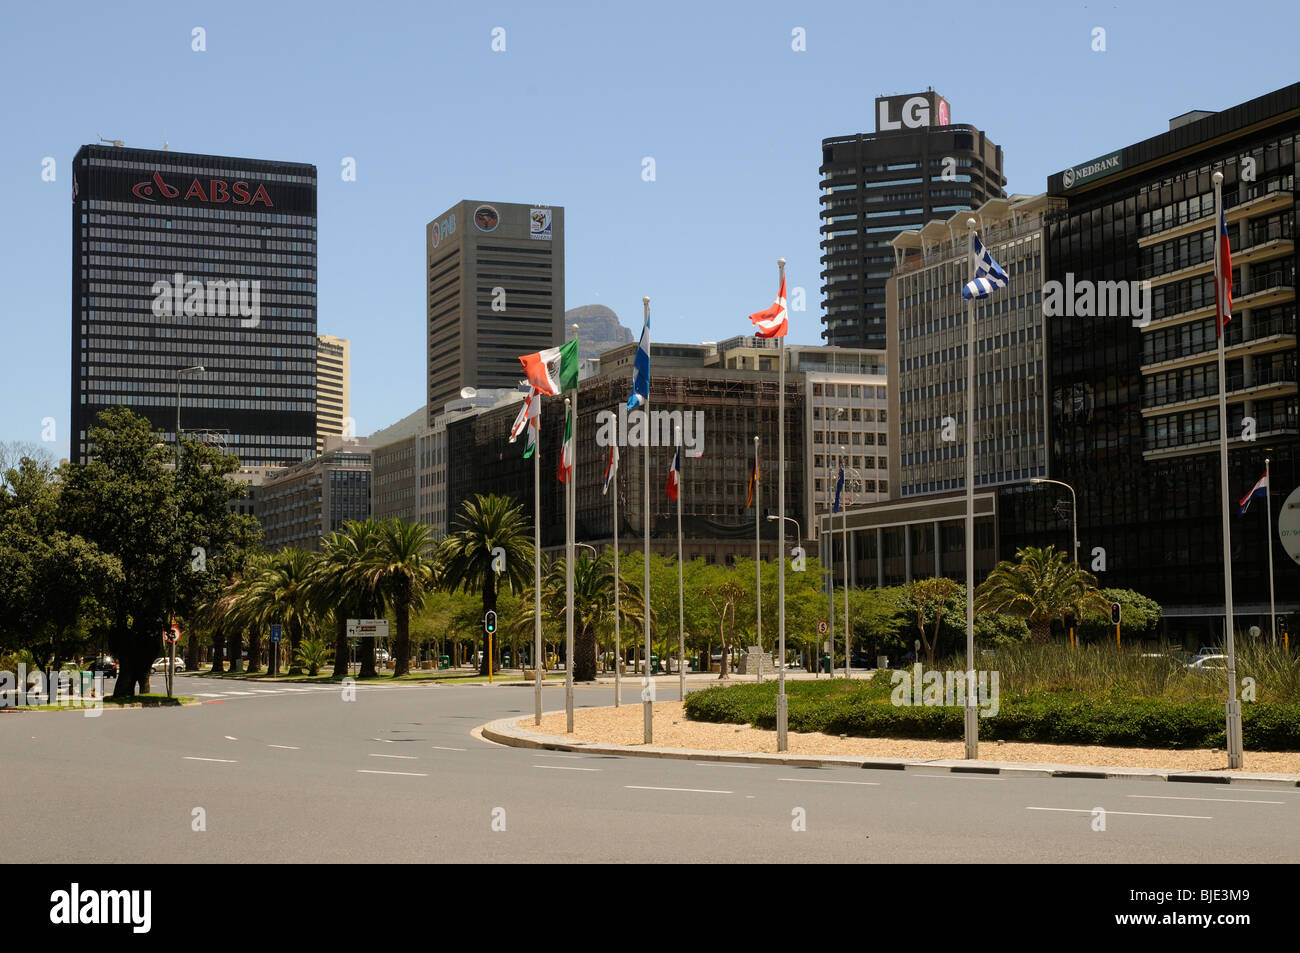 Nedbank and ABSA banks and other office premises along Adderley Street in Cape Town's city centre. South Africa - Stock Image